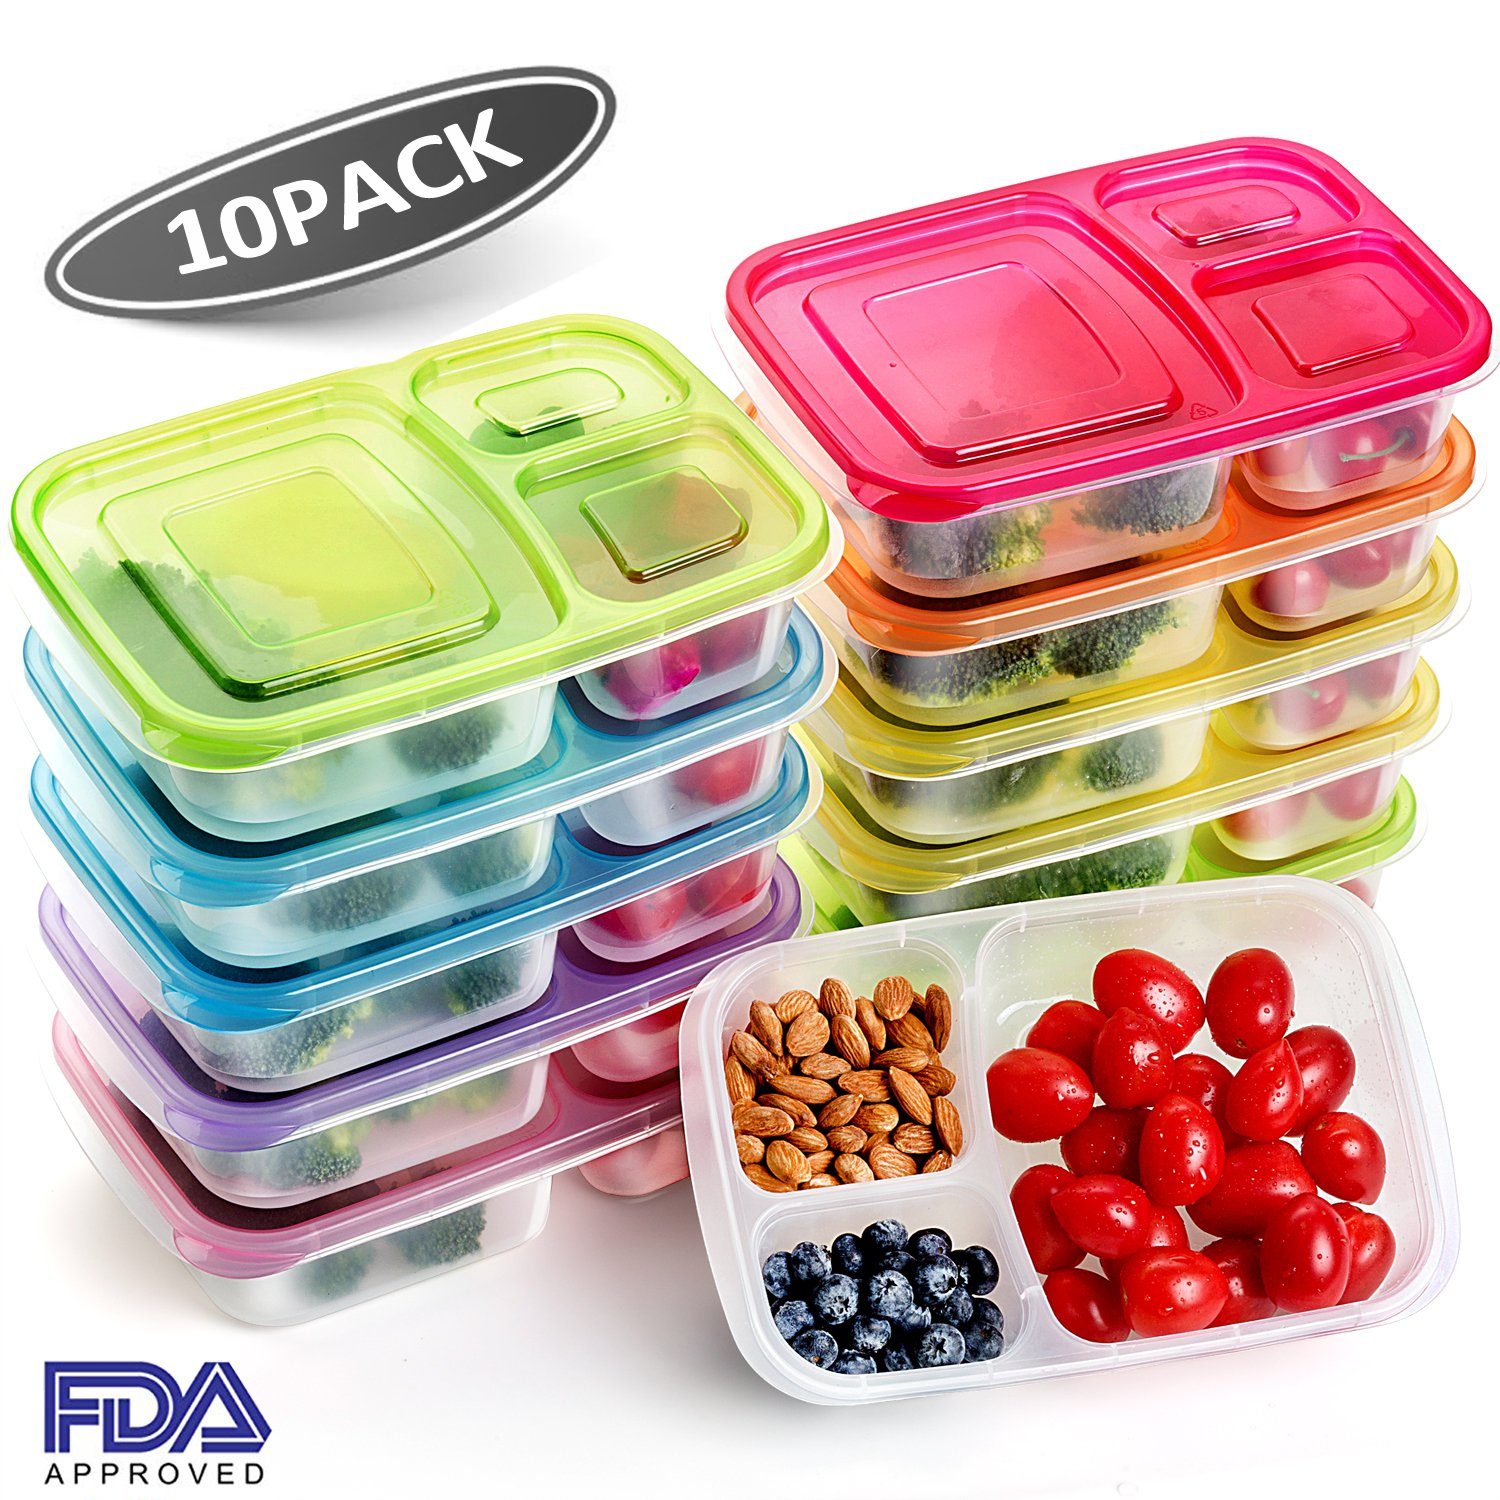 [10 Pack]Meal Prep Containers for Kids,3 Compartment Bento Lunch Box Portion Control Food Storage Containers,Microwave,Dishwasher,Freezer Safe